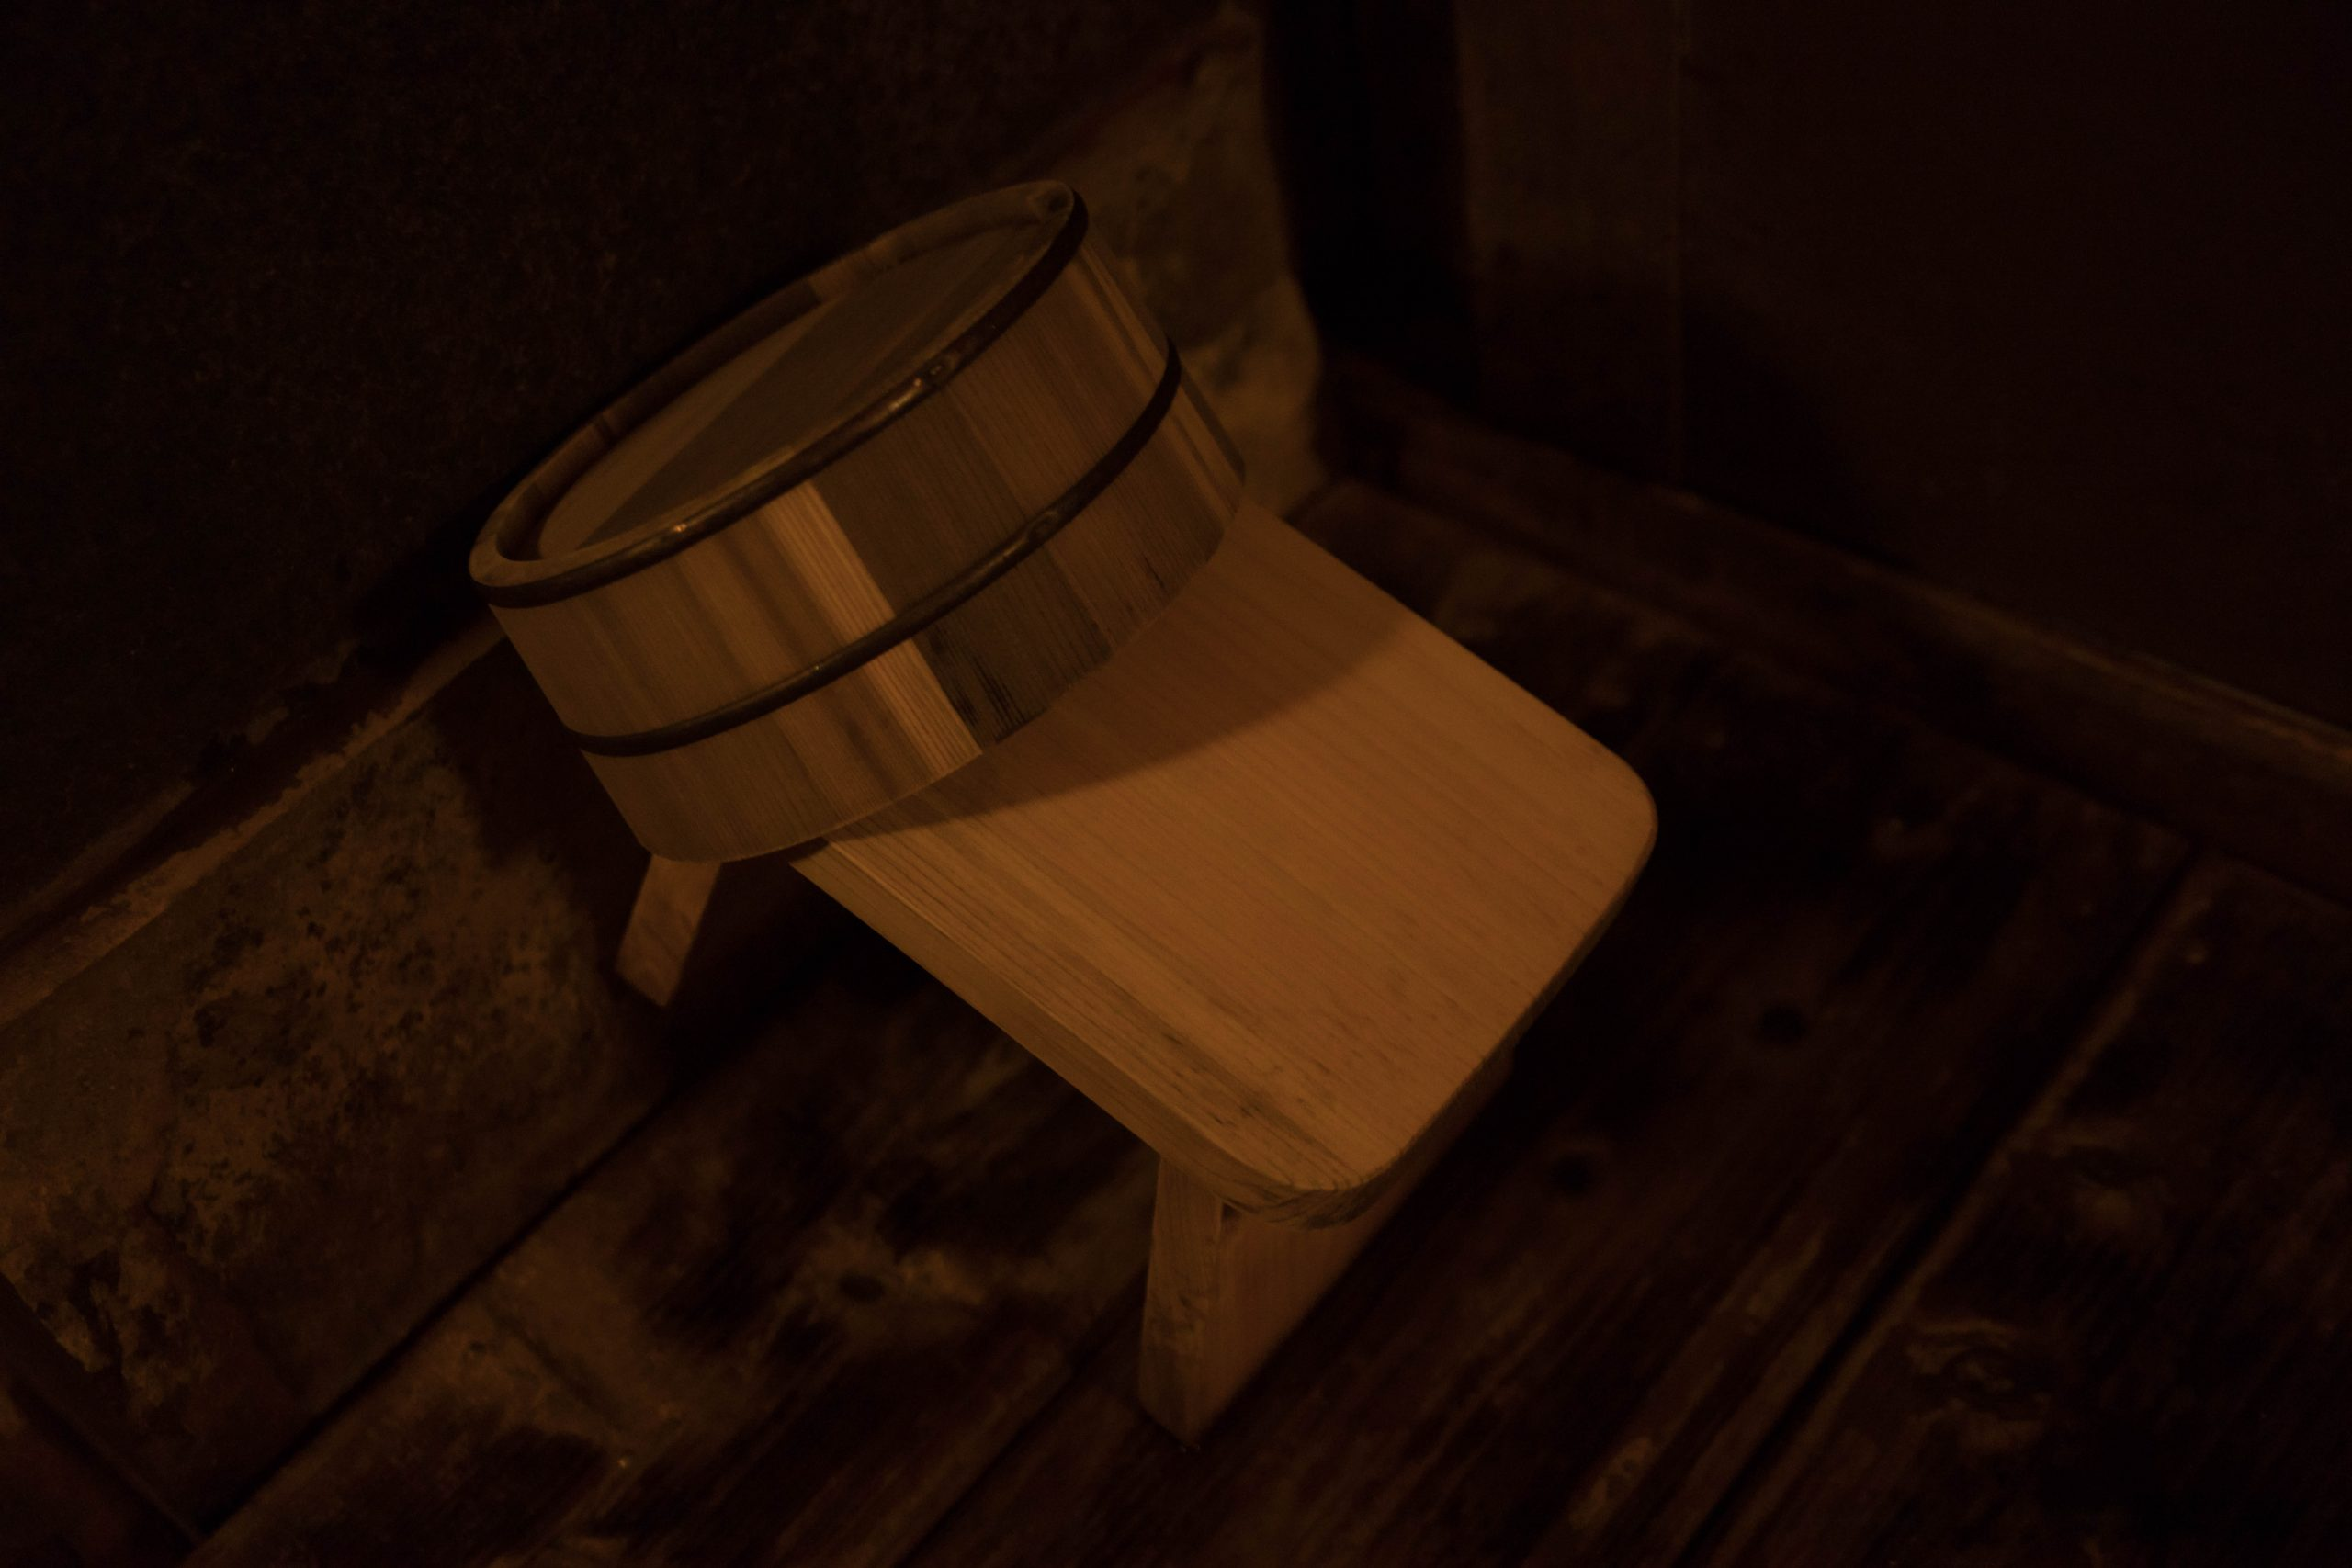 Bucket and bench Family Bath Onsen Hot Springs Etiquette in Japan by Annie Fairfax